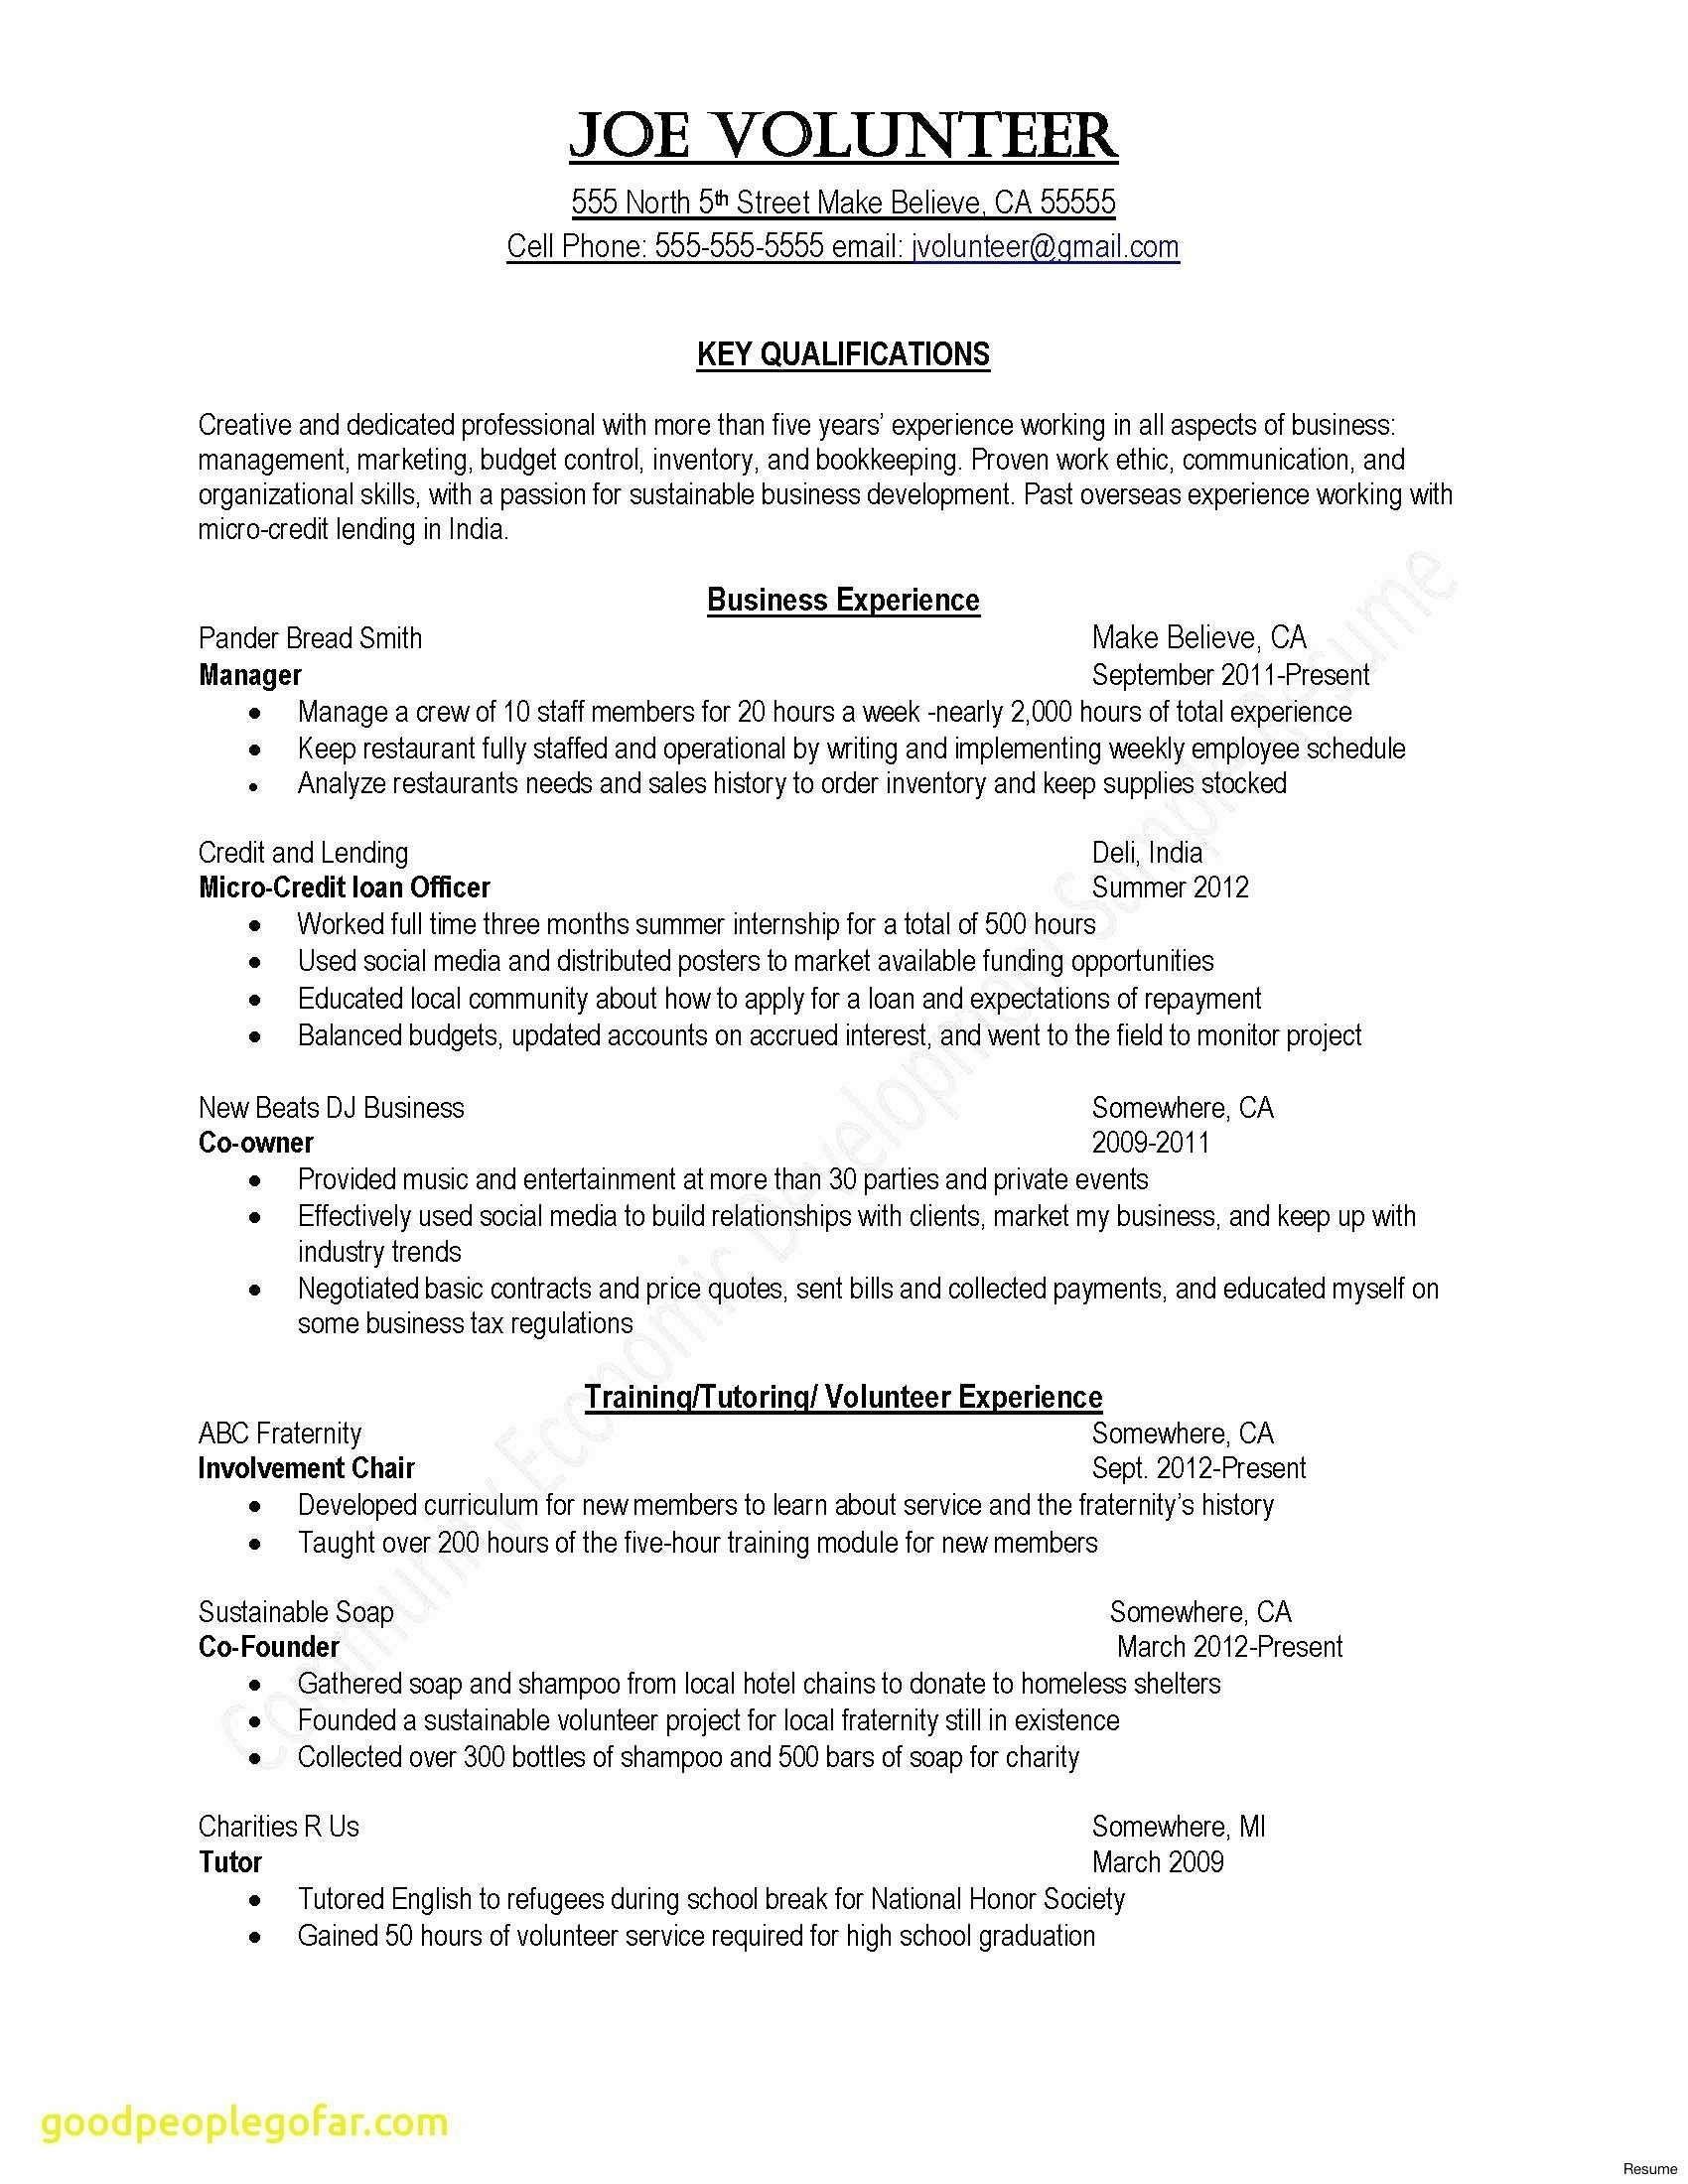 Volunteer Hours Confirmation Letter Template - Possible Job Opportunity Letter Refrence Sample Job Verification